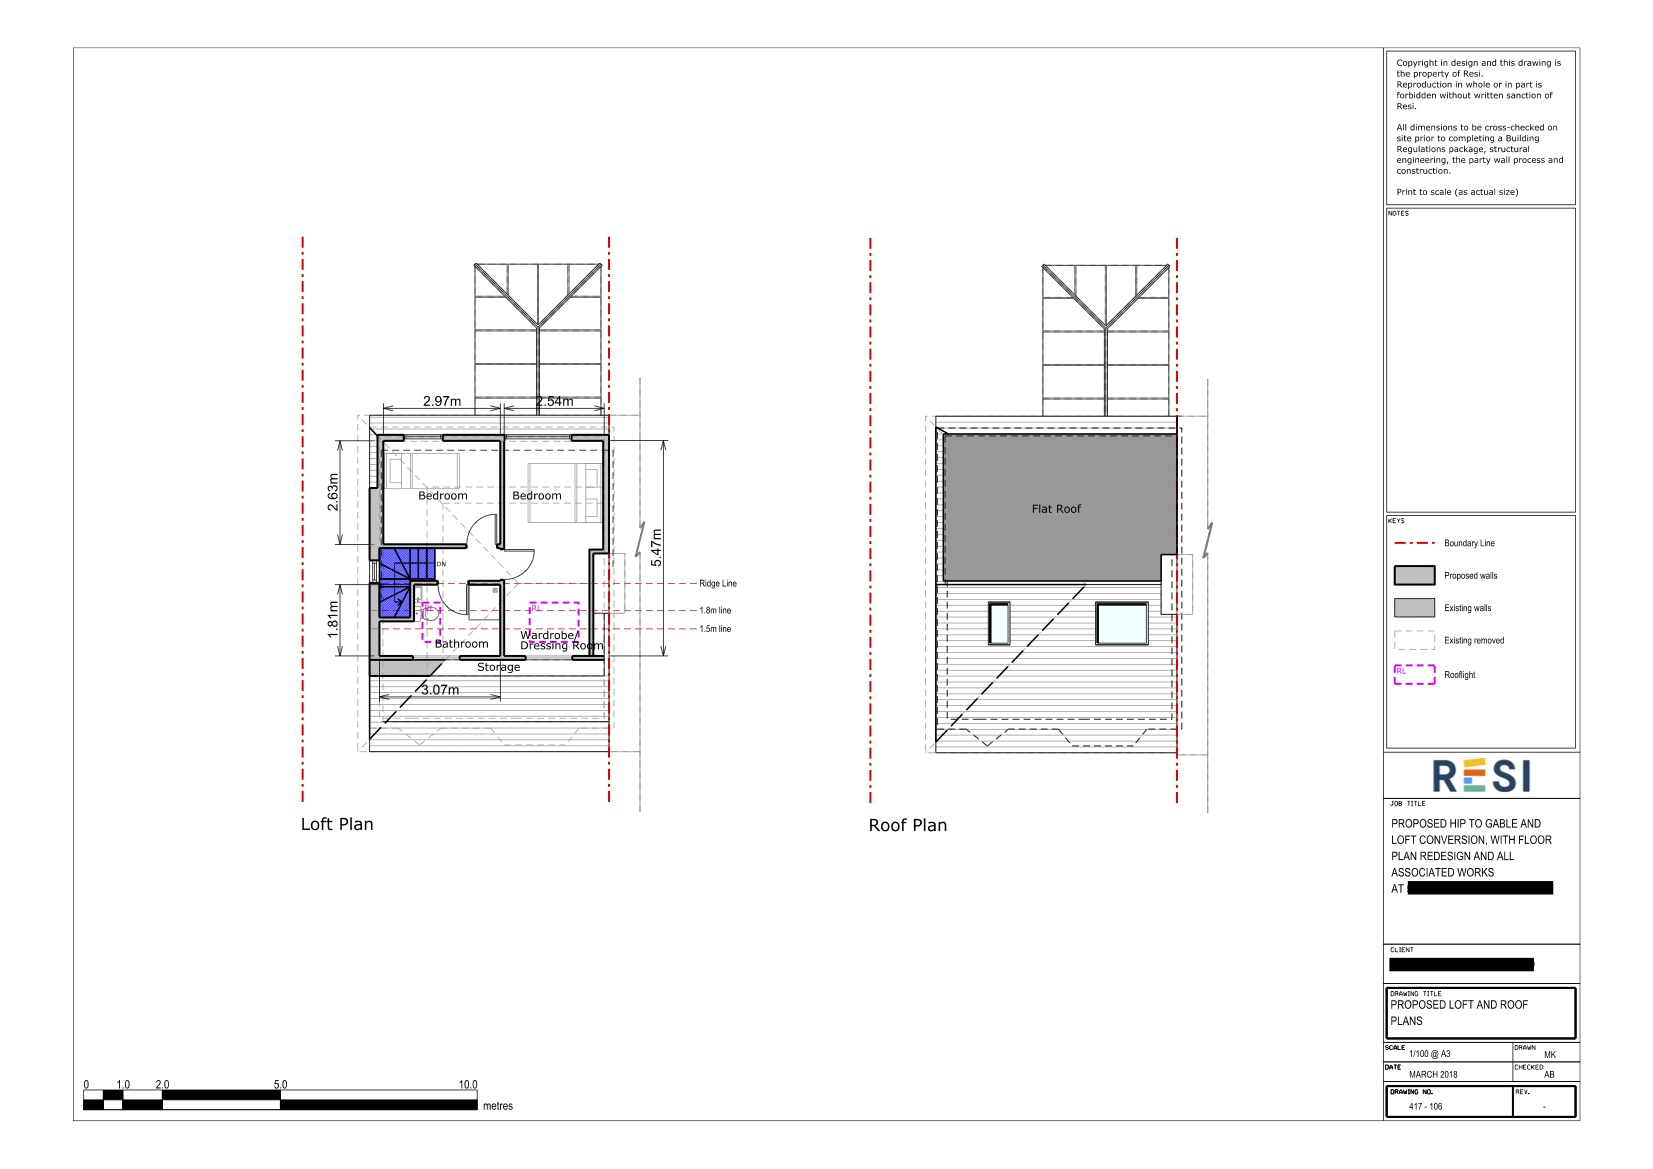 Architectural drawings set lc   loft floor plans